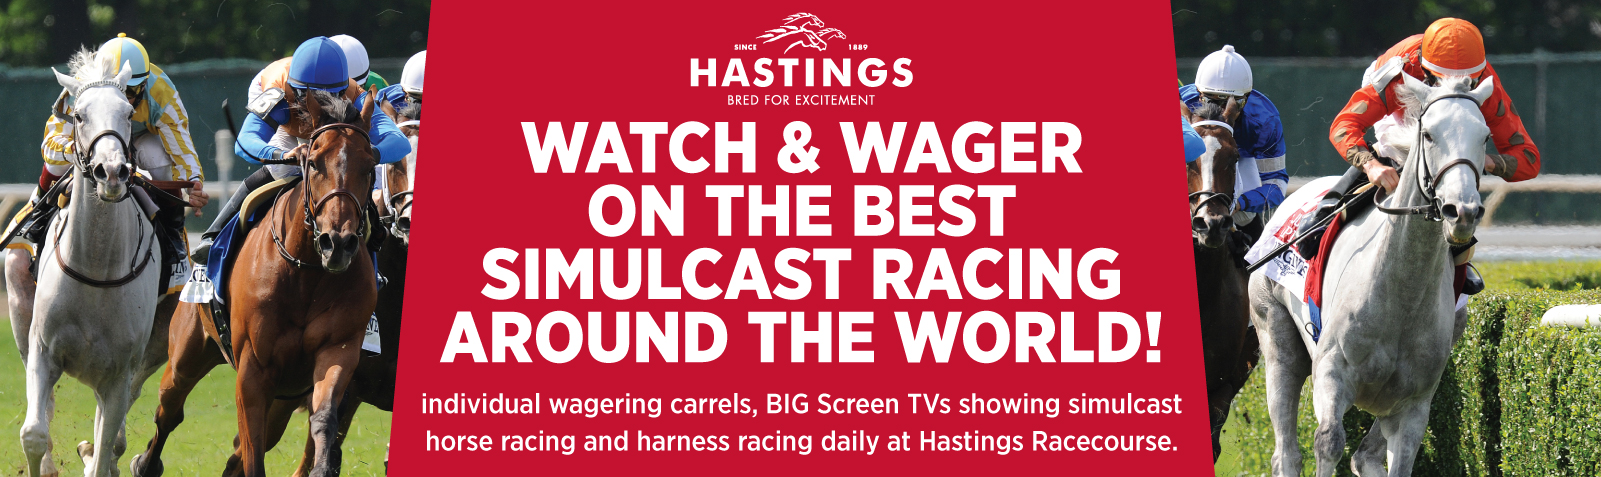 MKT14-233-Watch-Simulcast-at-Hastings